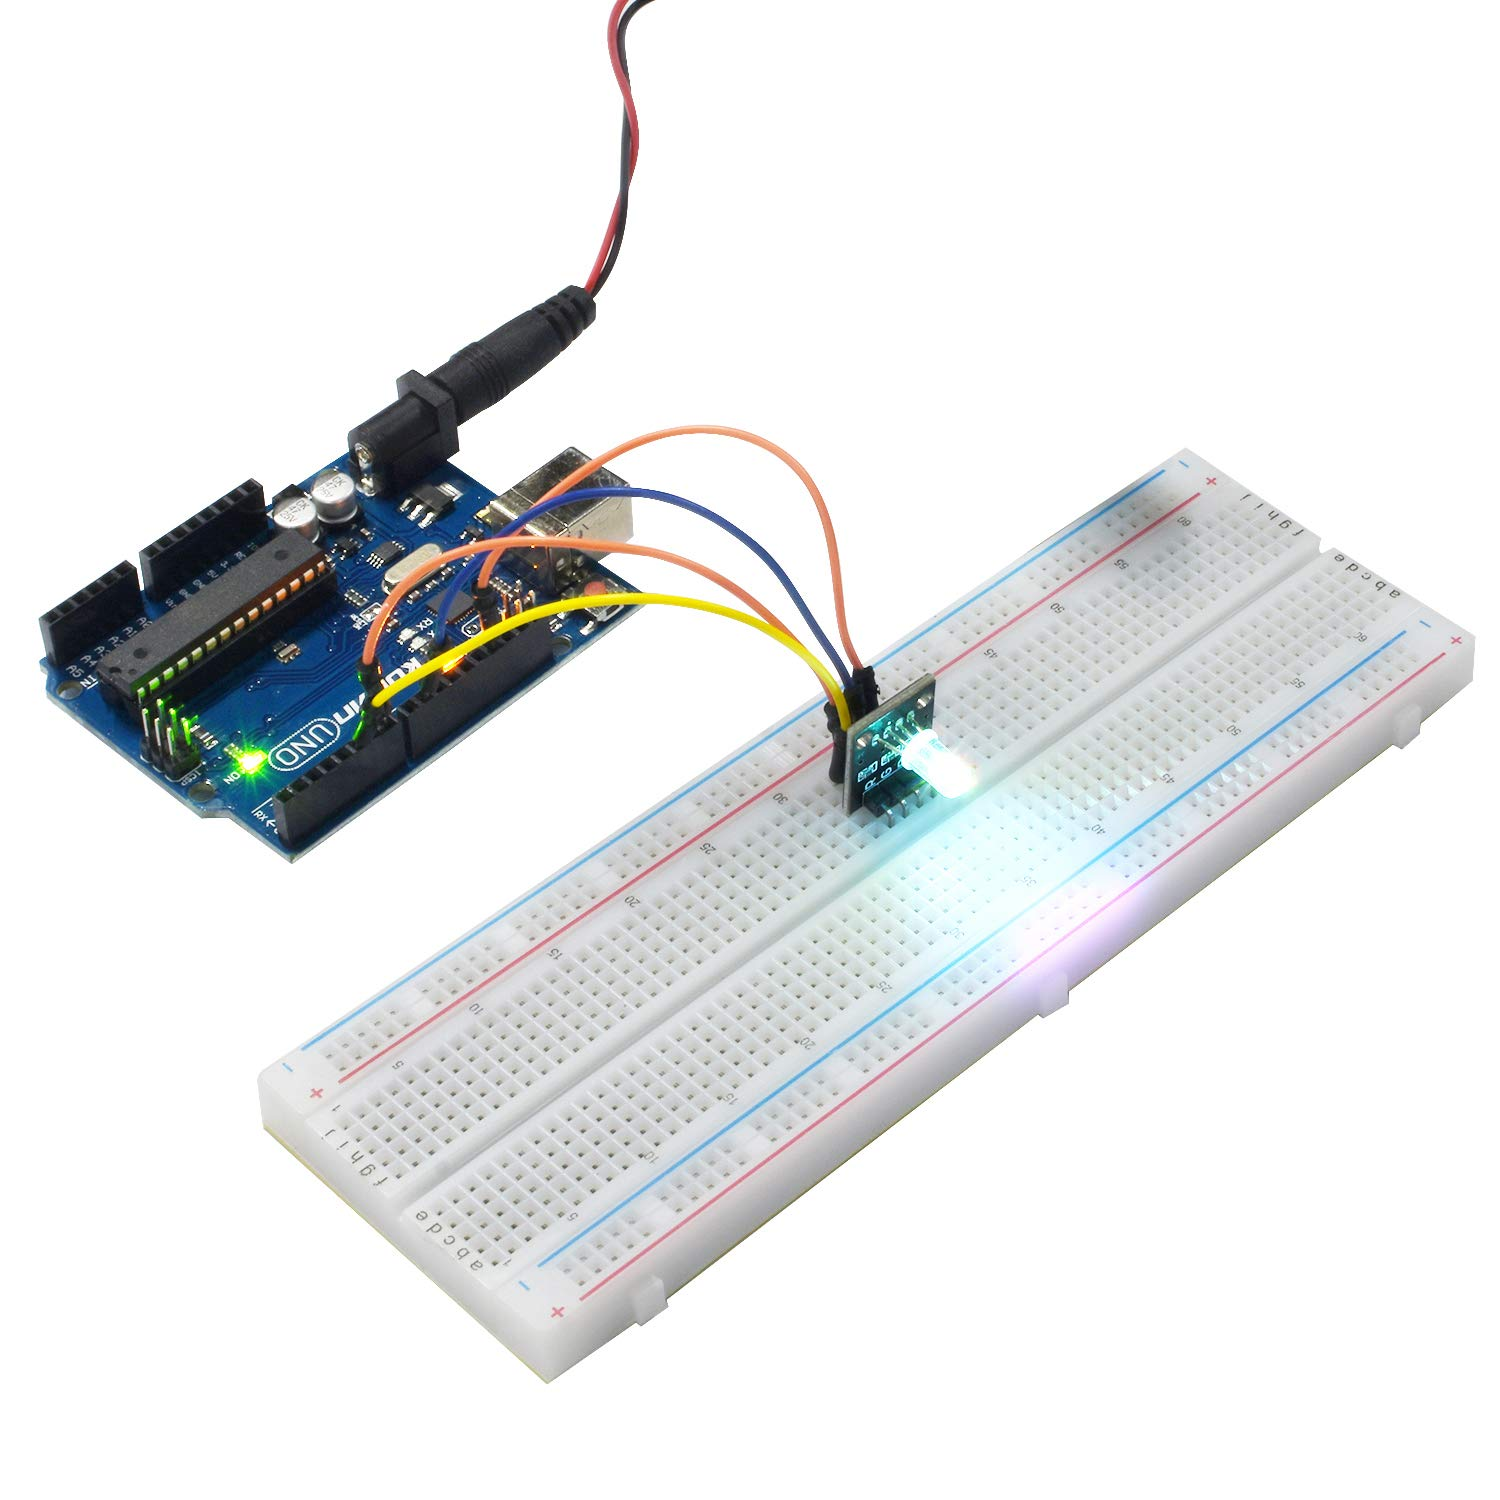 Kuman K4 Us For Arduino Project Complete Starter Kit 41 Breadboarded Led Circuit With Detailed Tutorial And Reliable Components Uno R3 Mega 2560 Robot Nano Breadboard